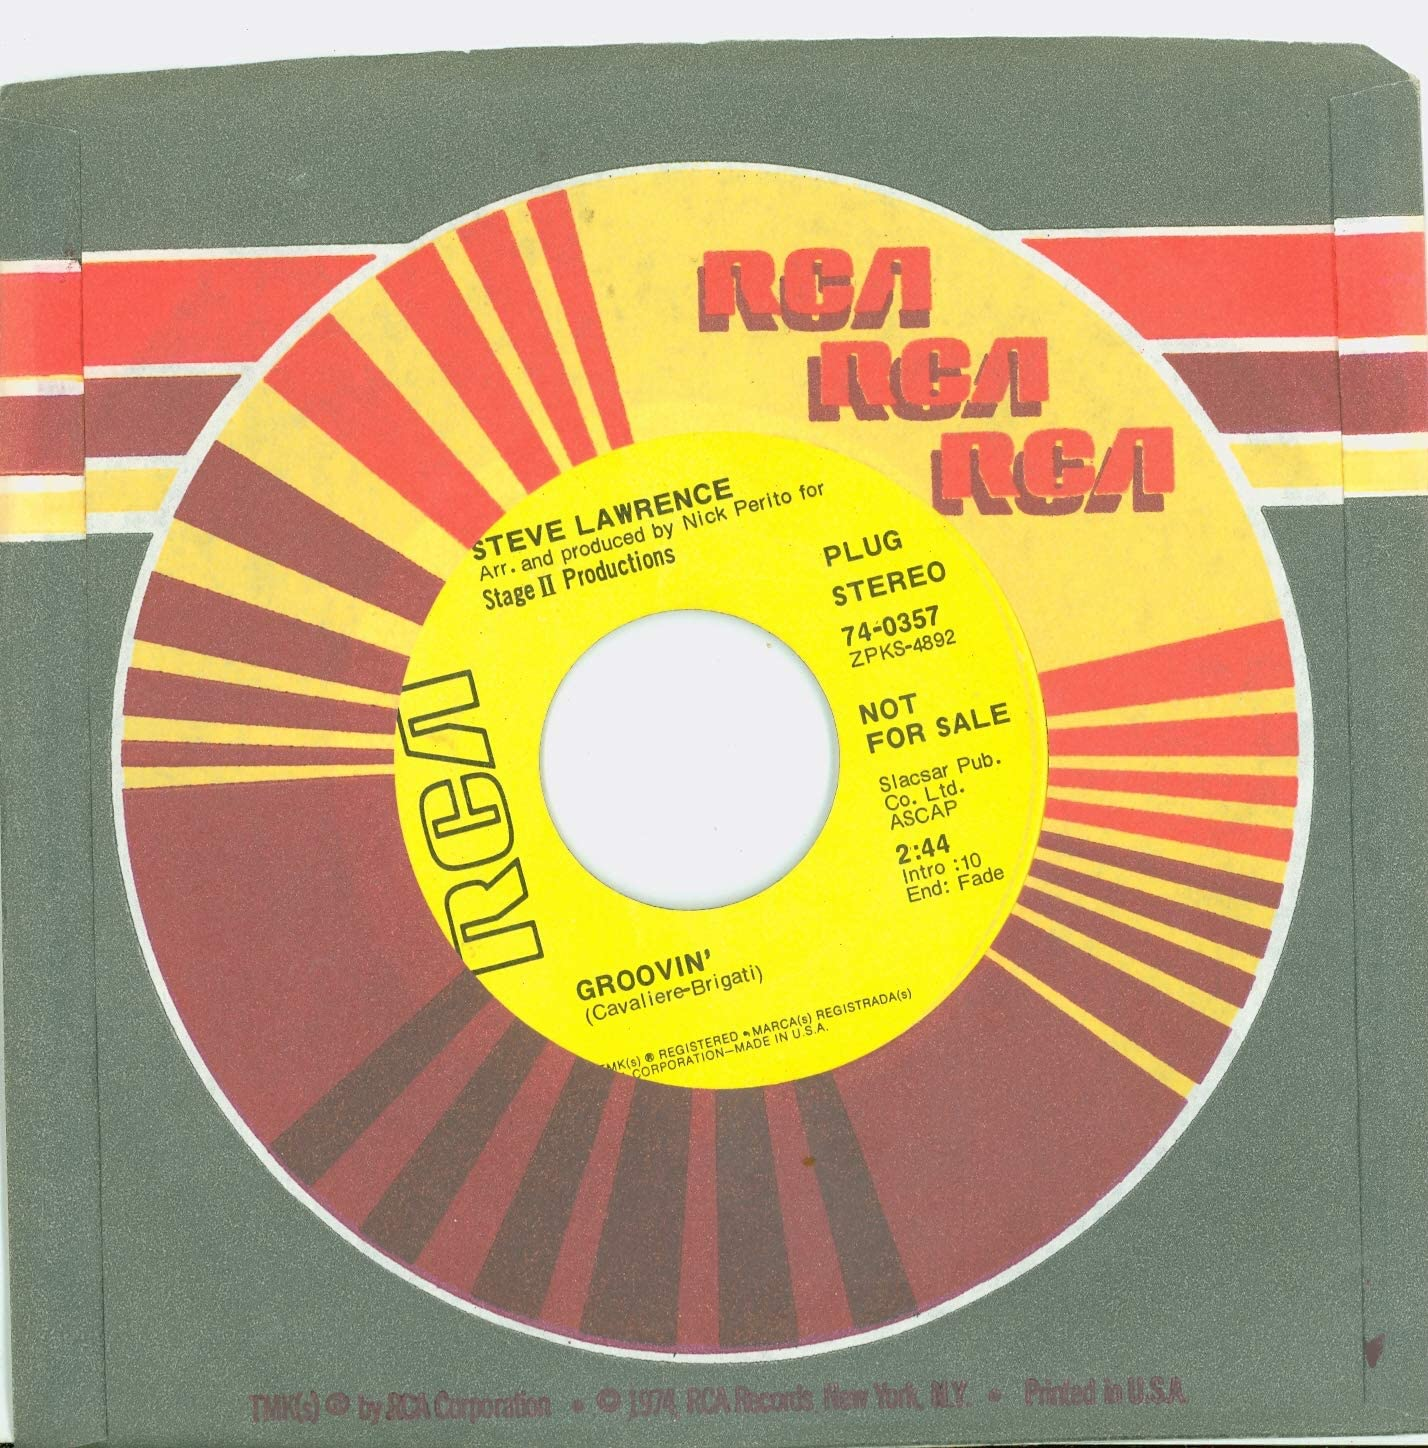 Max 55% OFF Groovin' Being Alive - Steve Victor Lawrence 1970 RCA unisex Records